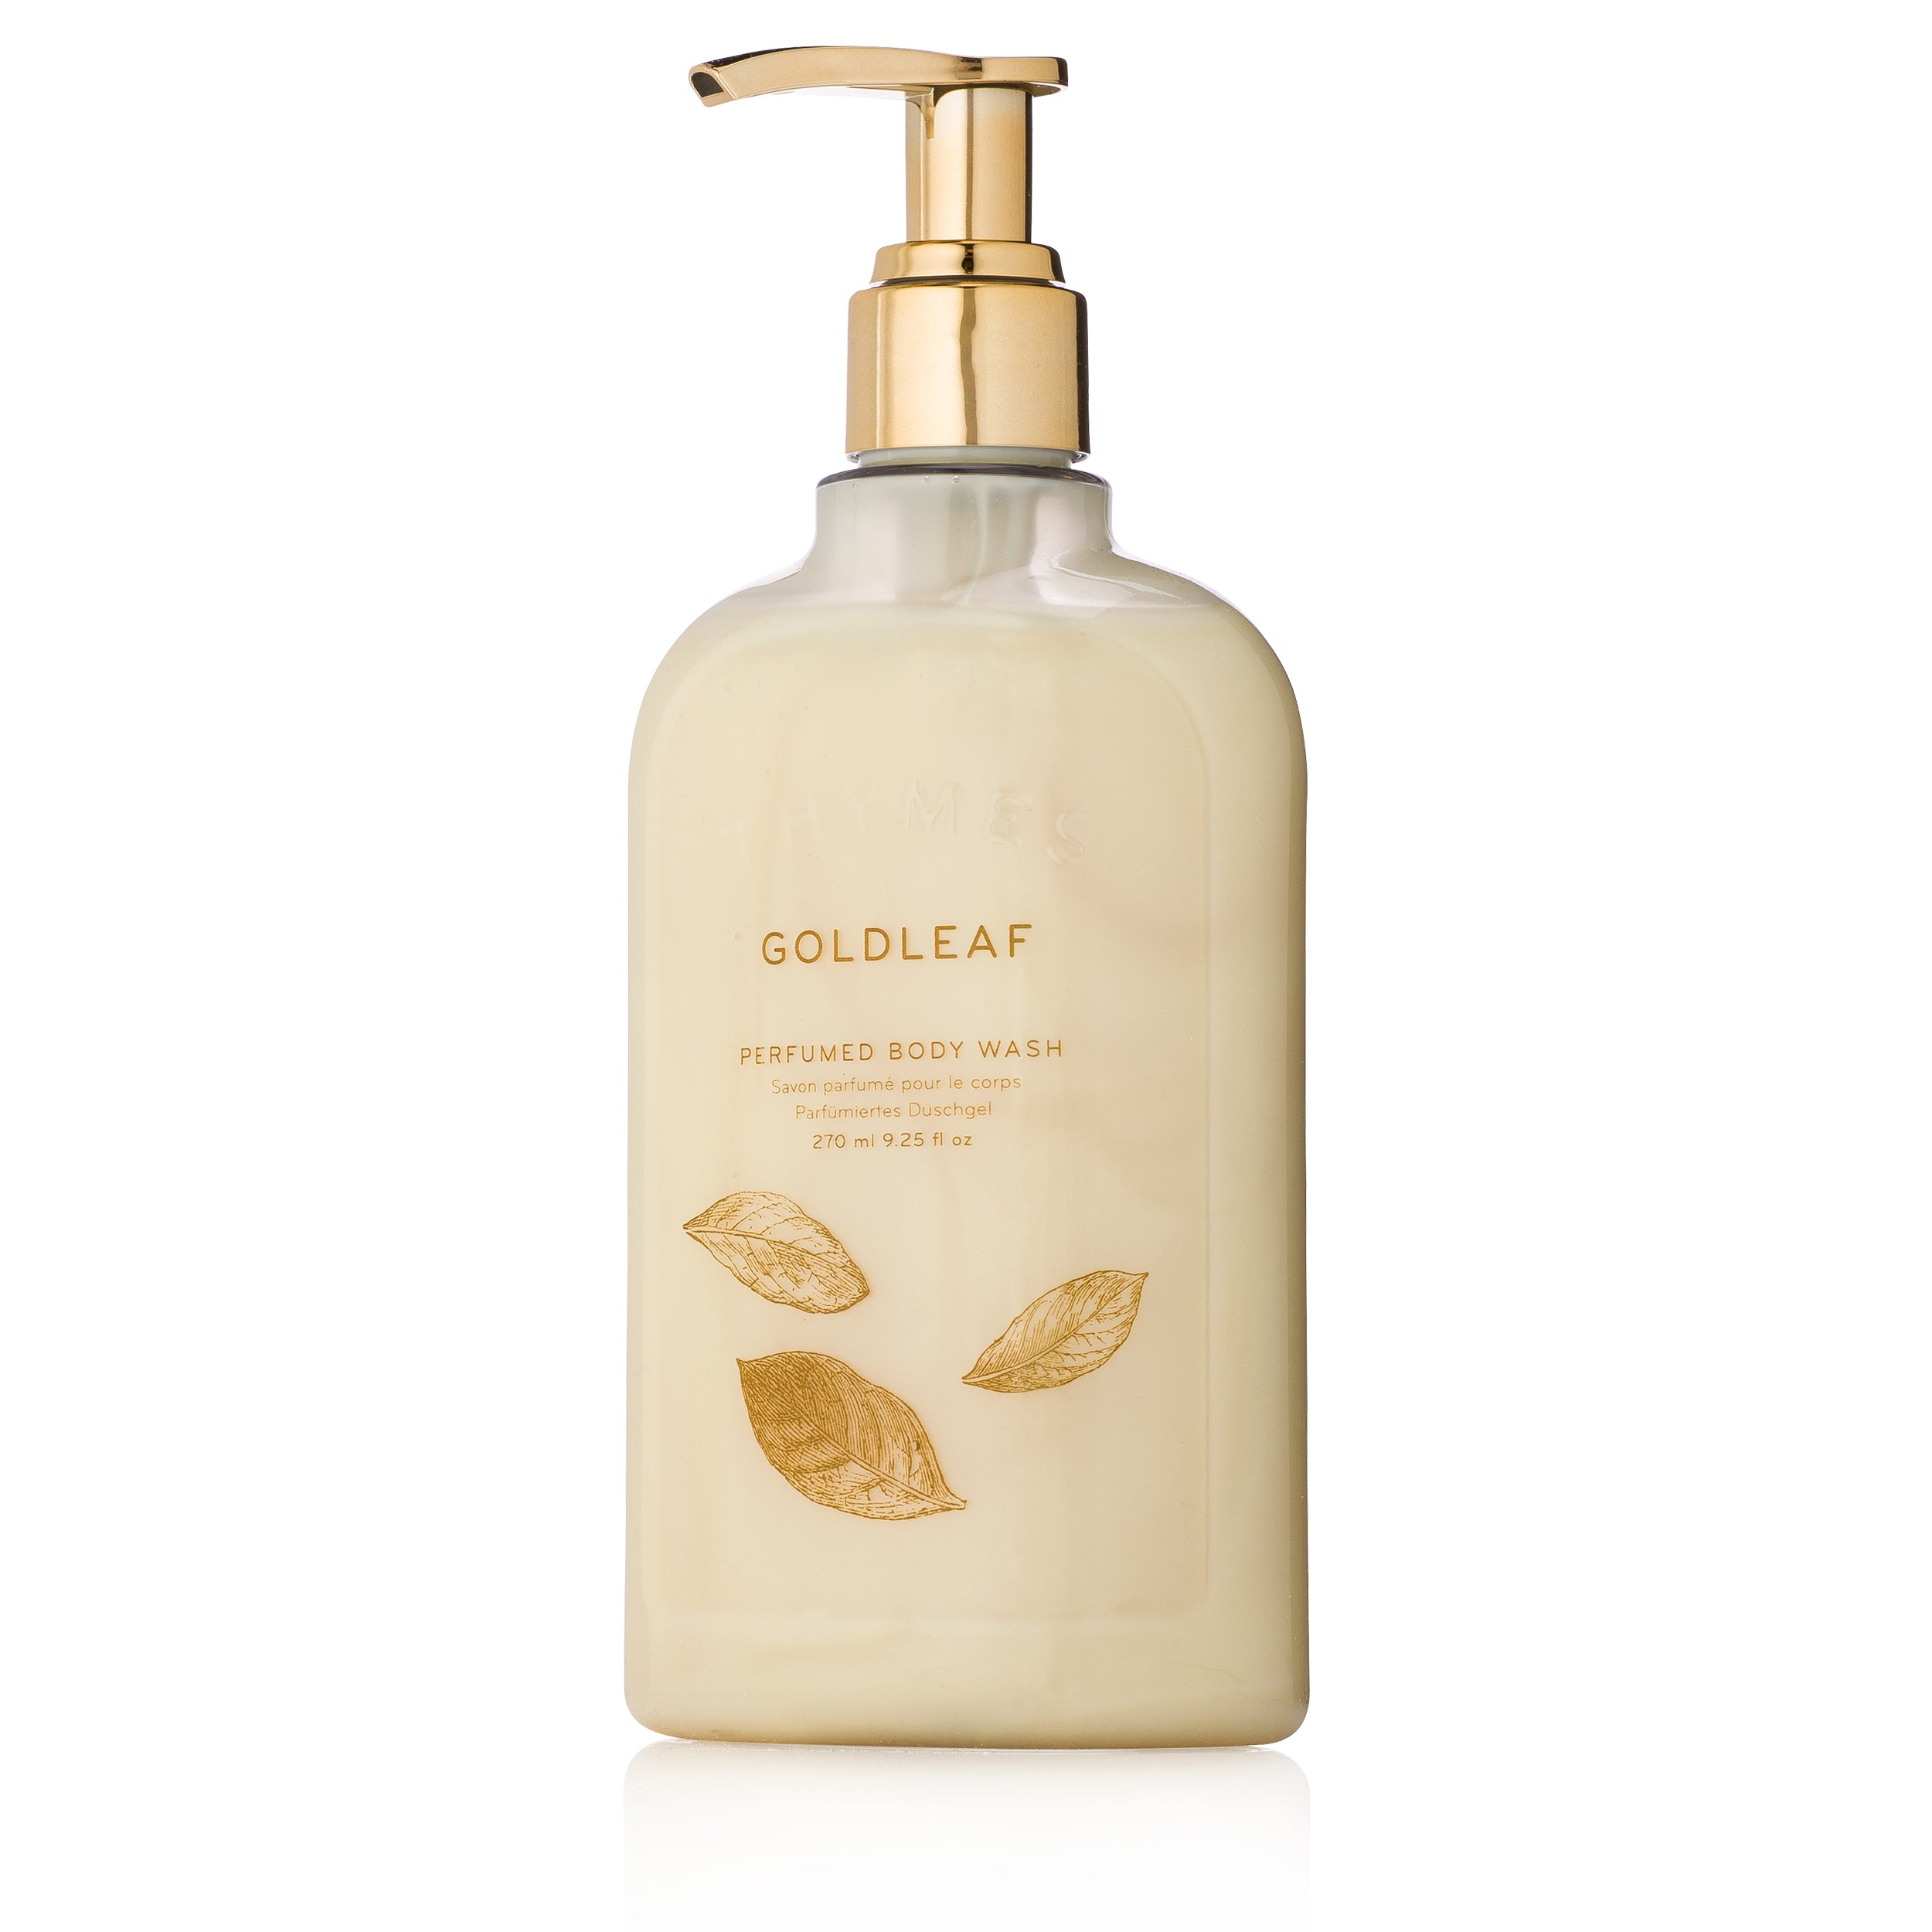 Goldleaf Perfumed Body Wash